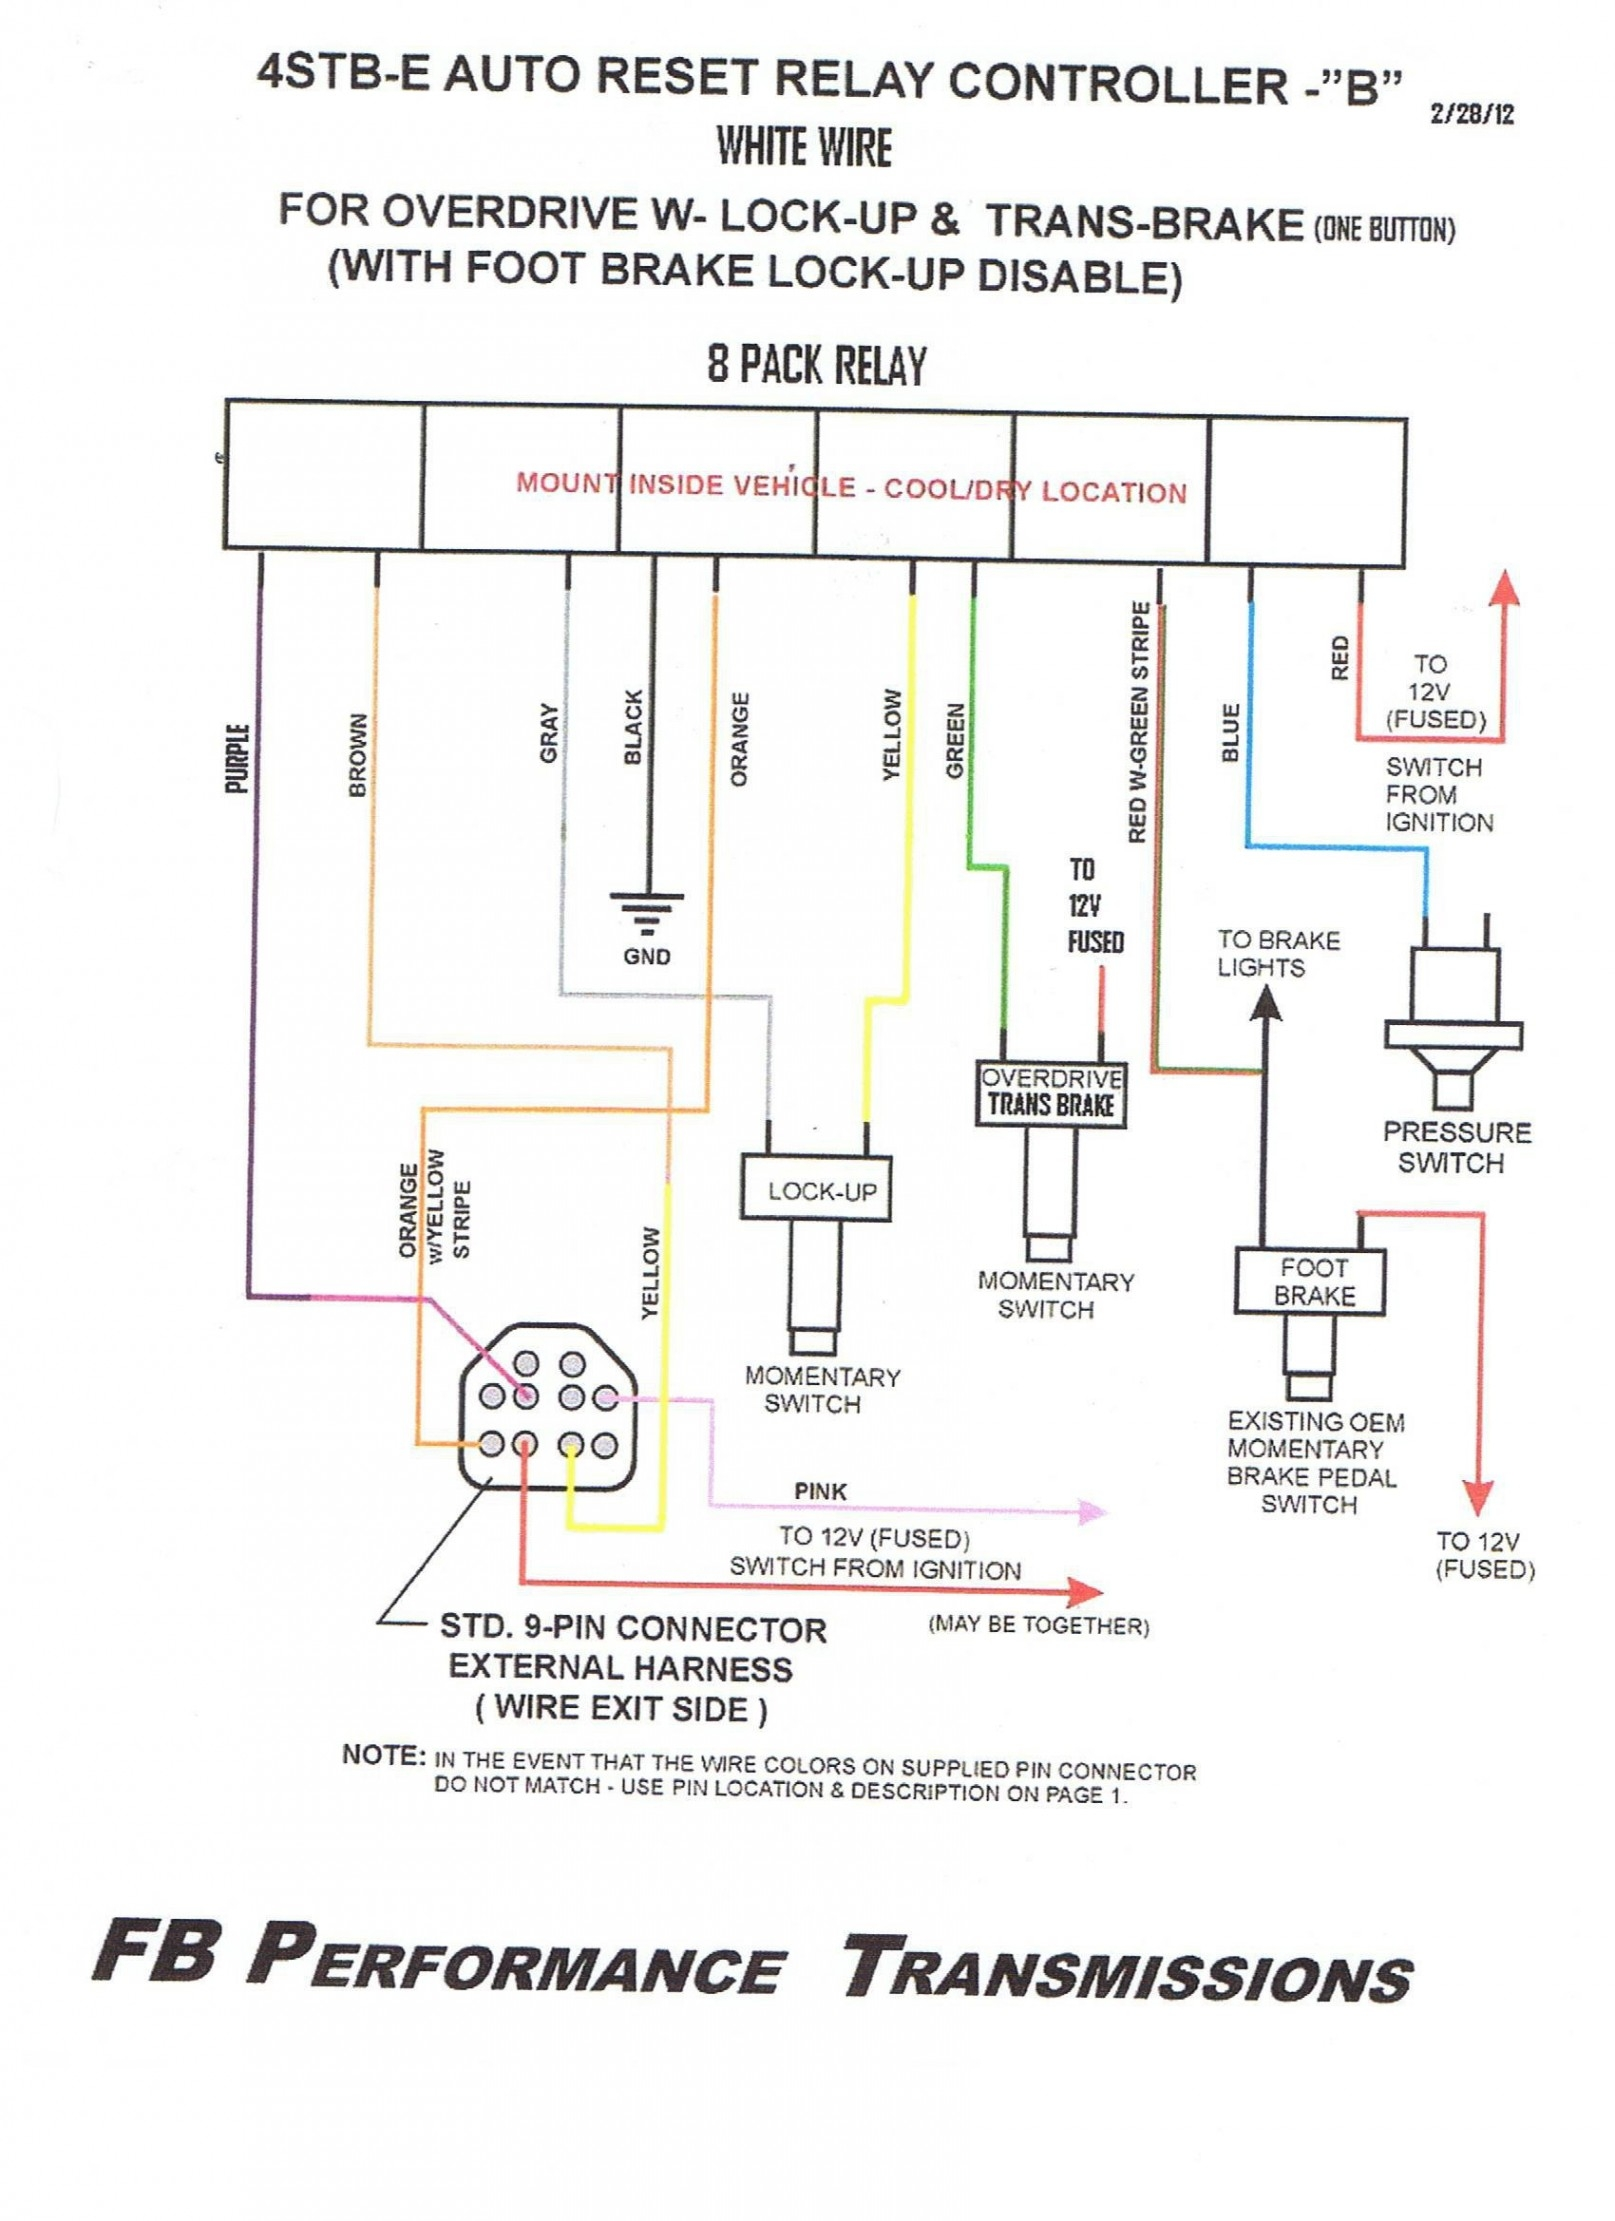 R Tv Cable Diagram moreover Page Thumb Large furthermore Rj S together with Figure further L E Neutral Safety Switch Wiring Diagram L E Neutral Safety Switch Wiring Diagram Wiring Diagram Safety Relay Refrence Luxury L E Neutral Safety R. on 700r4 converter lock up switch wiring diagram manual